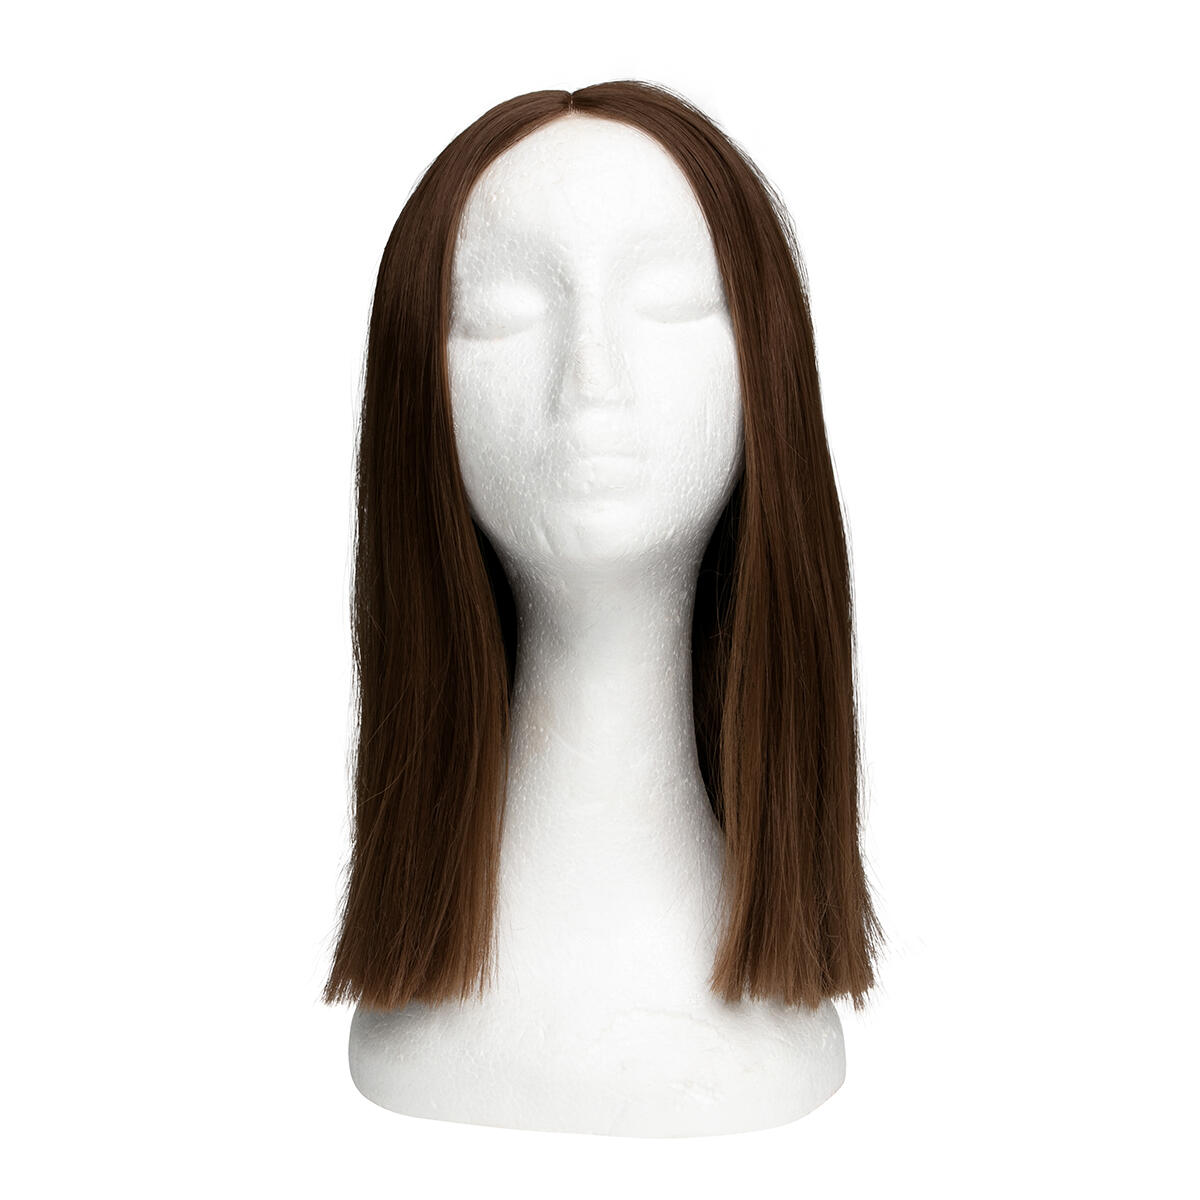 Lace Front Wig Straight Short 5.0 Brown 35 cm